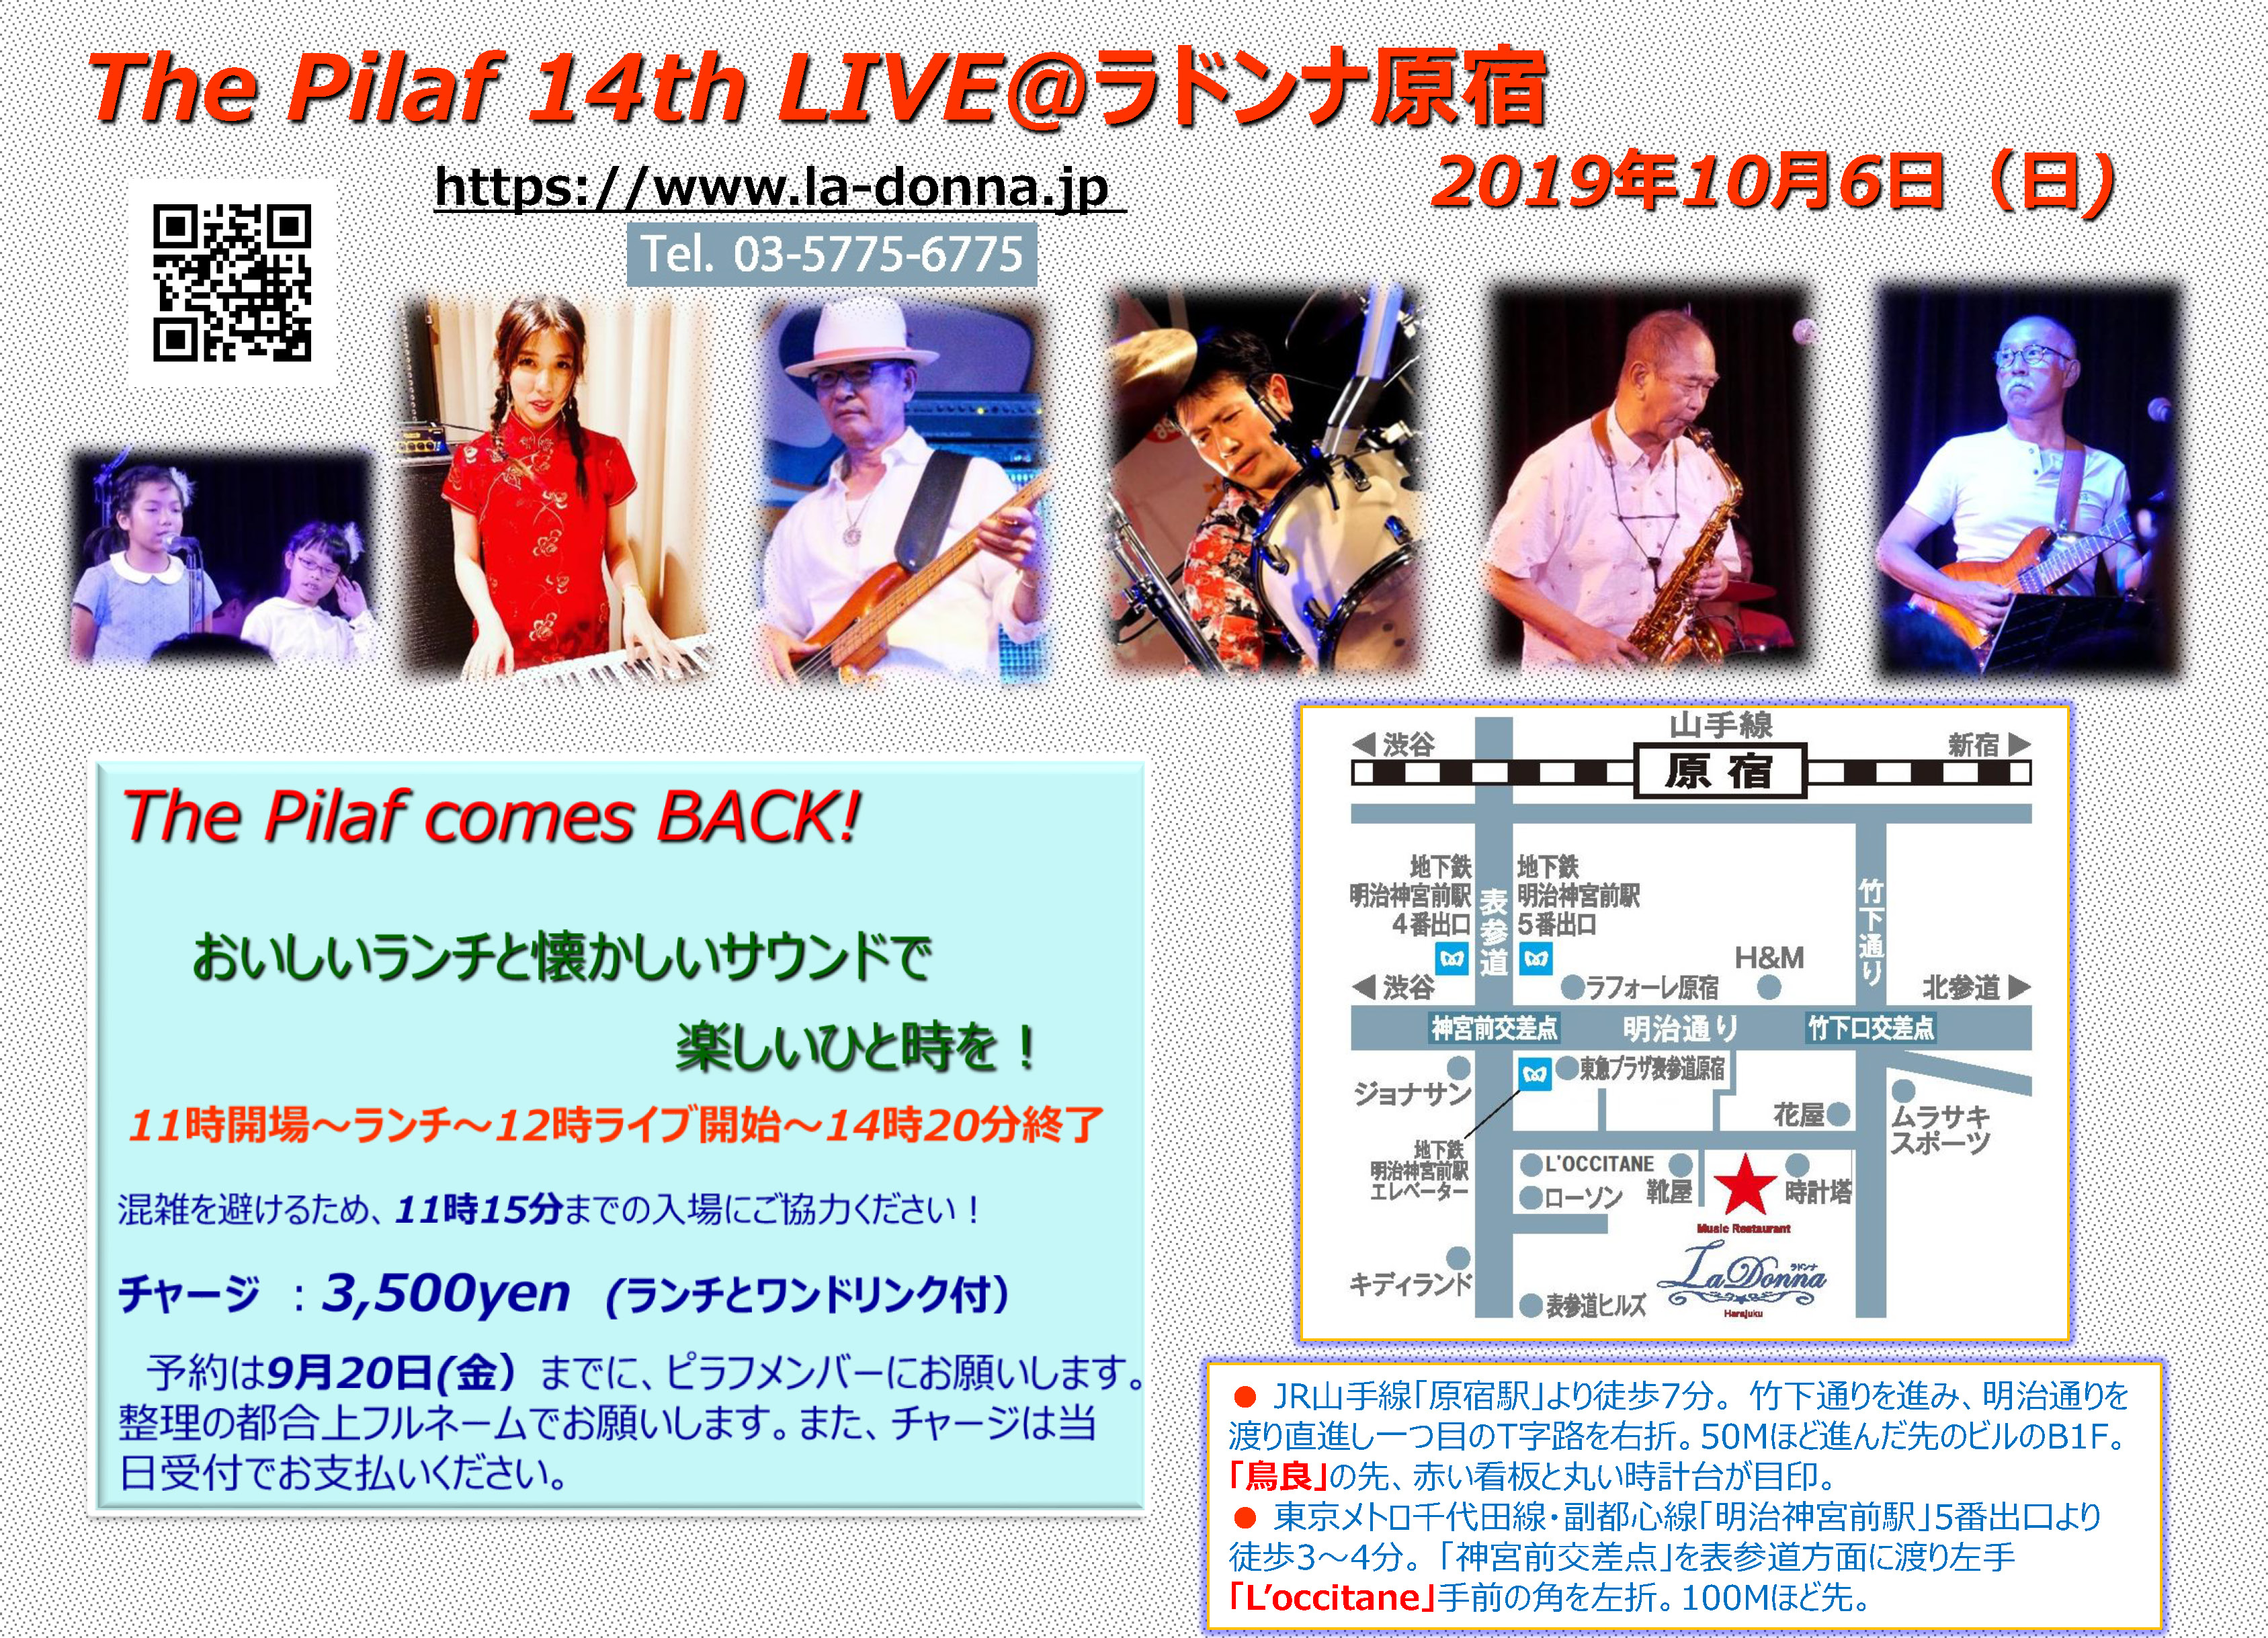 The Pilaf 14th LIVE@ラドンナ原宿